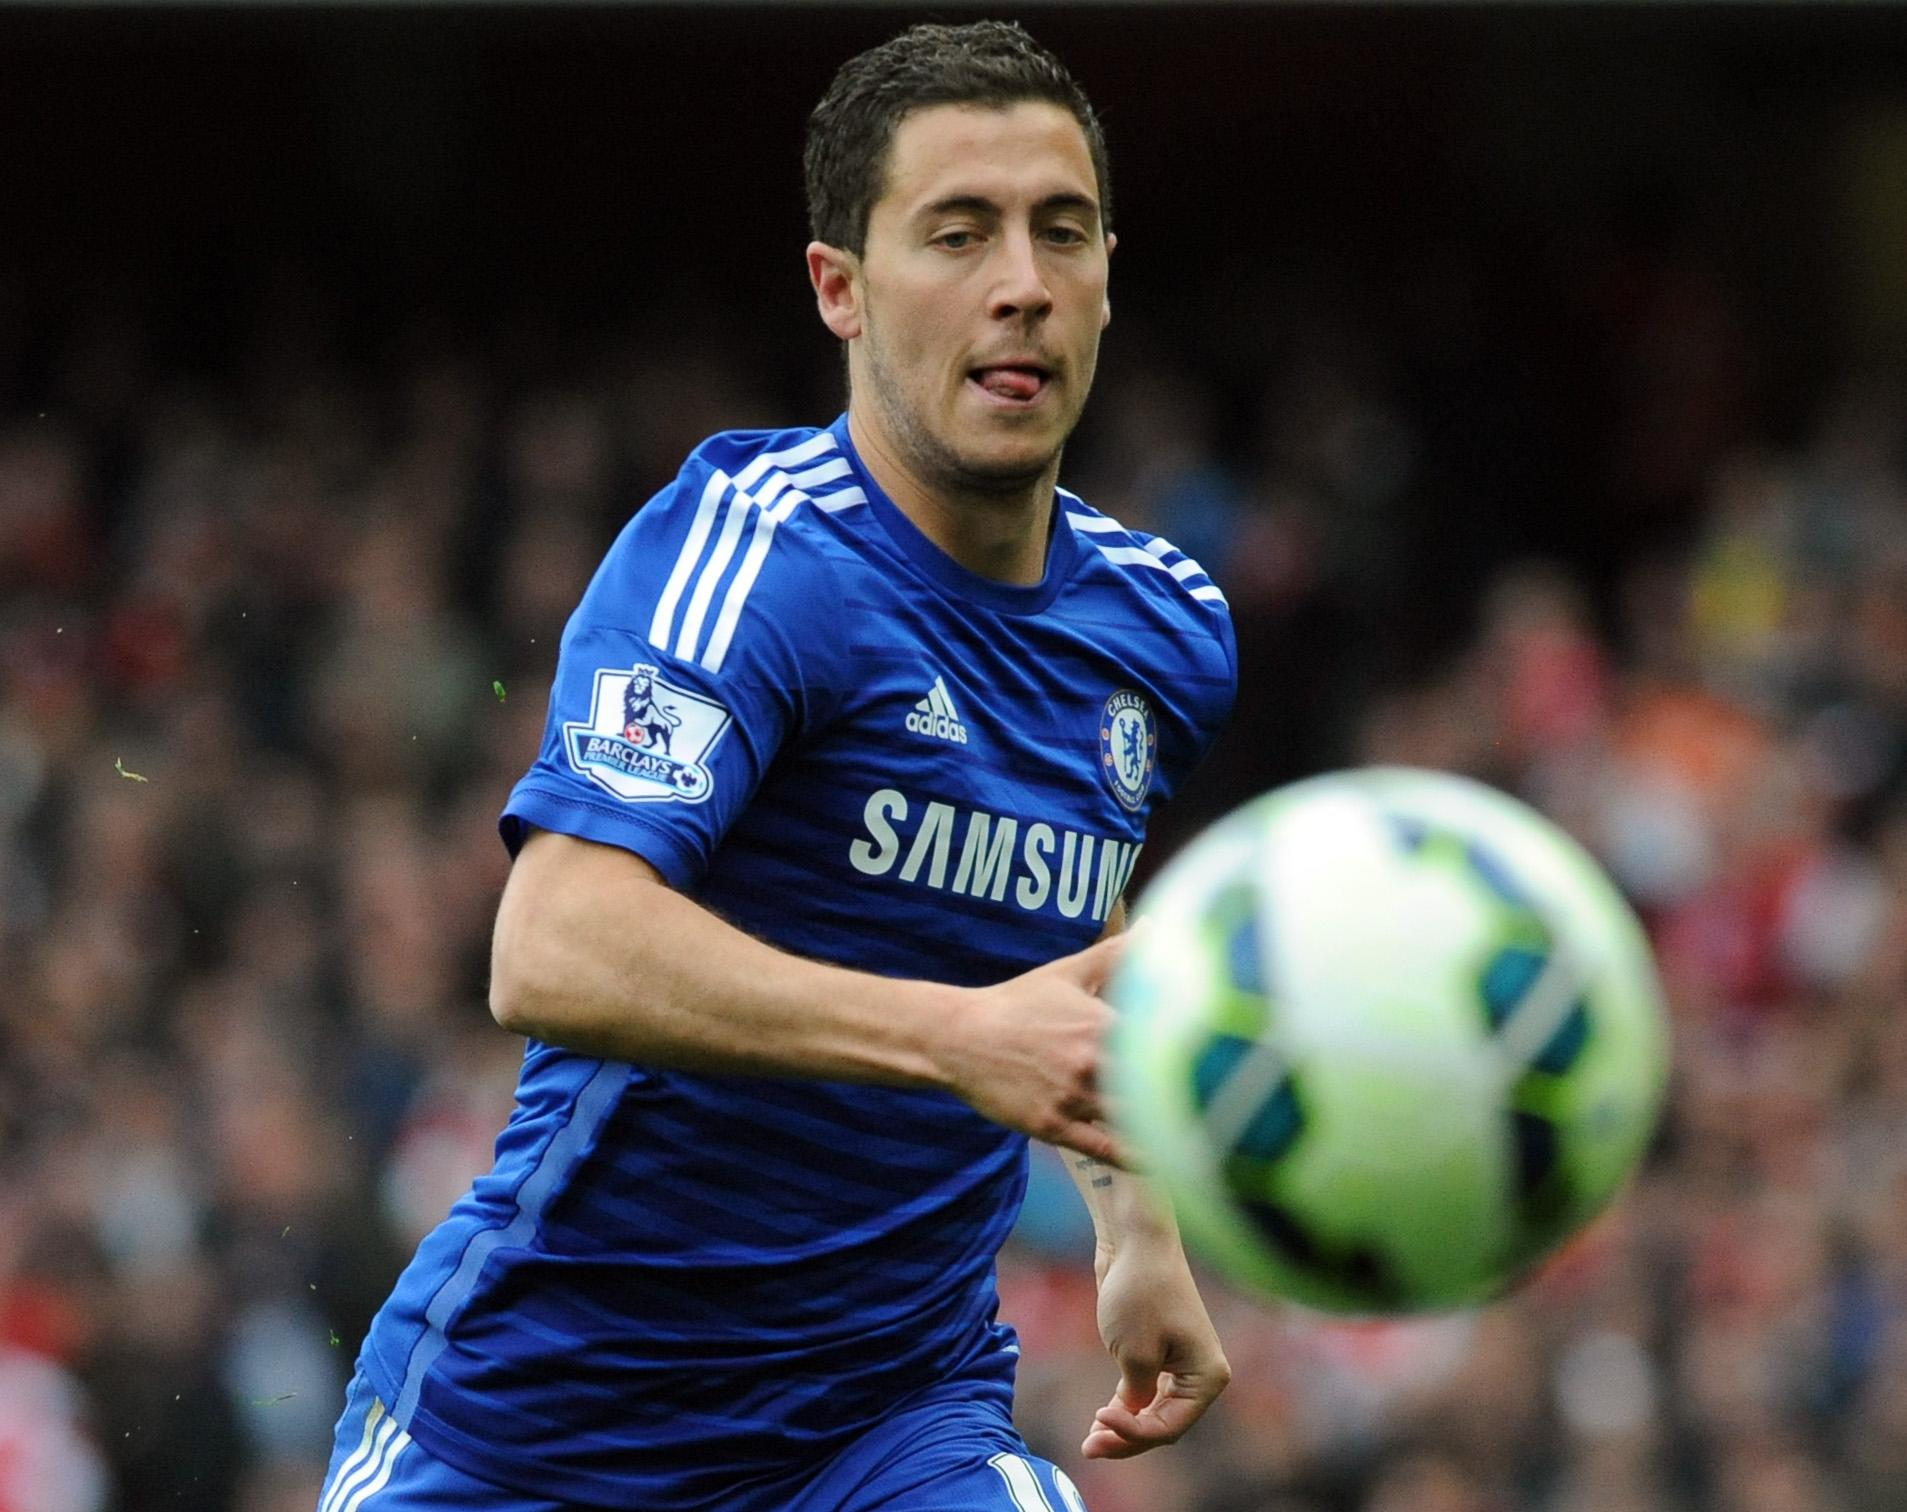 Eden Hazard voted player of year by fellow pros in England